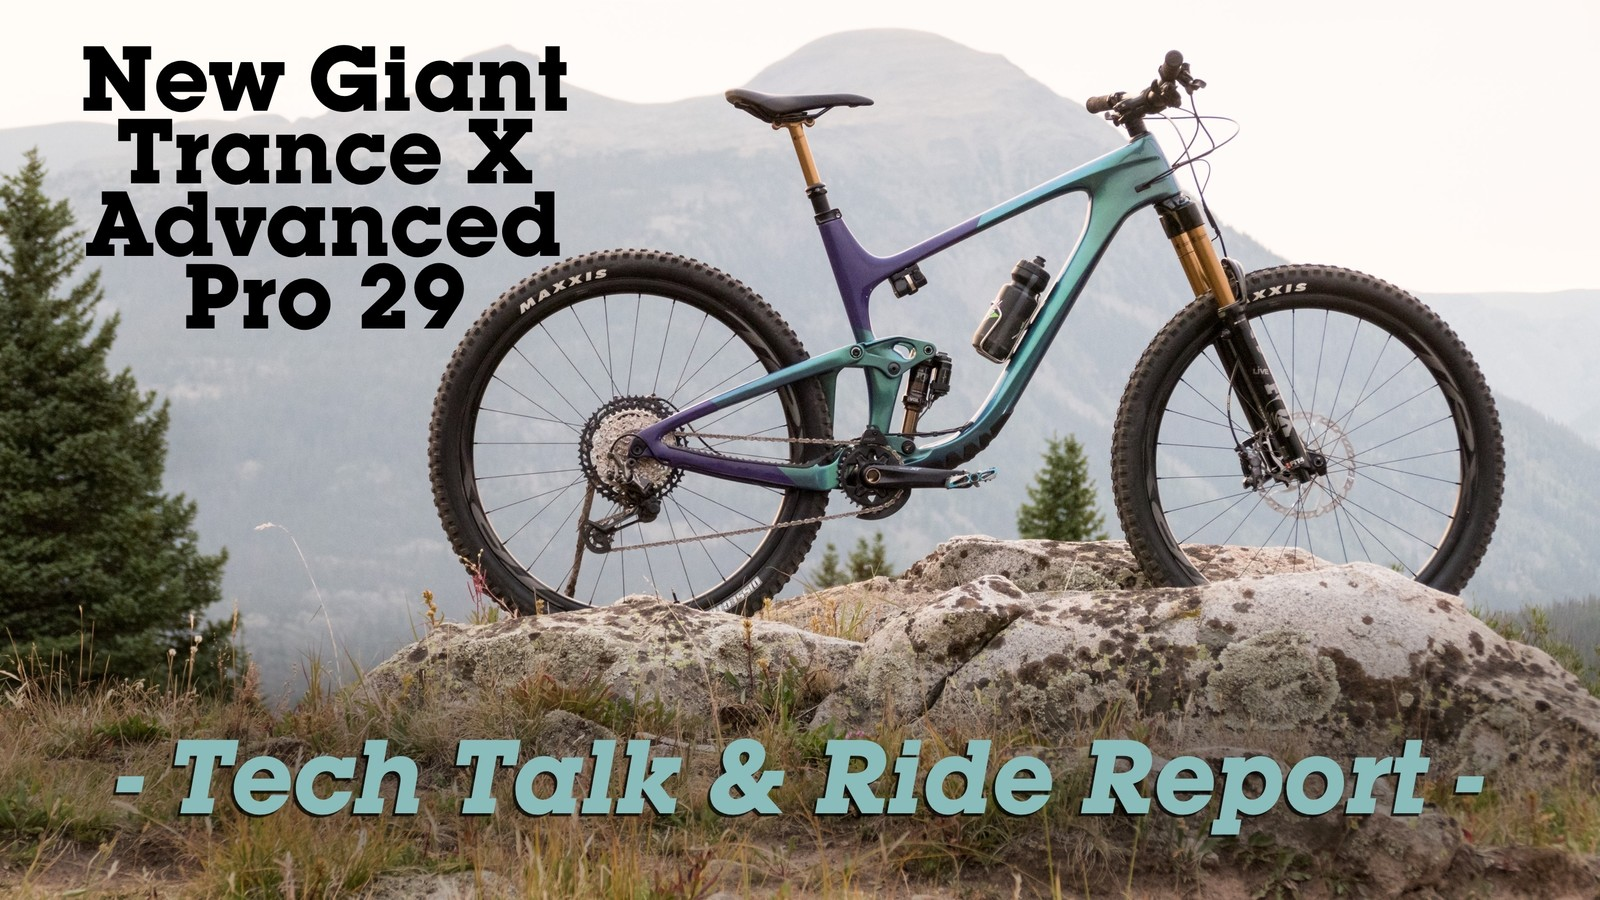 Love in the Time of COVID-19? An All-New Giant Trance X Advanced Pro 29 Texts You Late Night